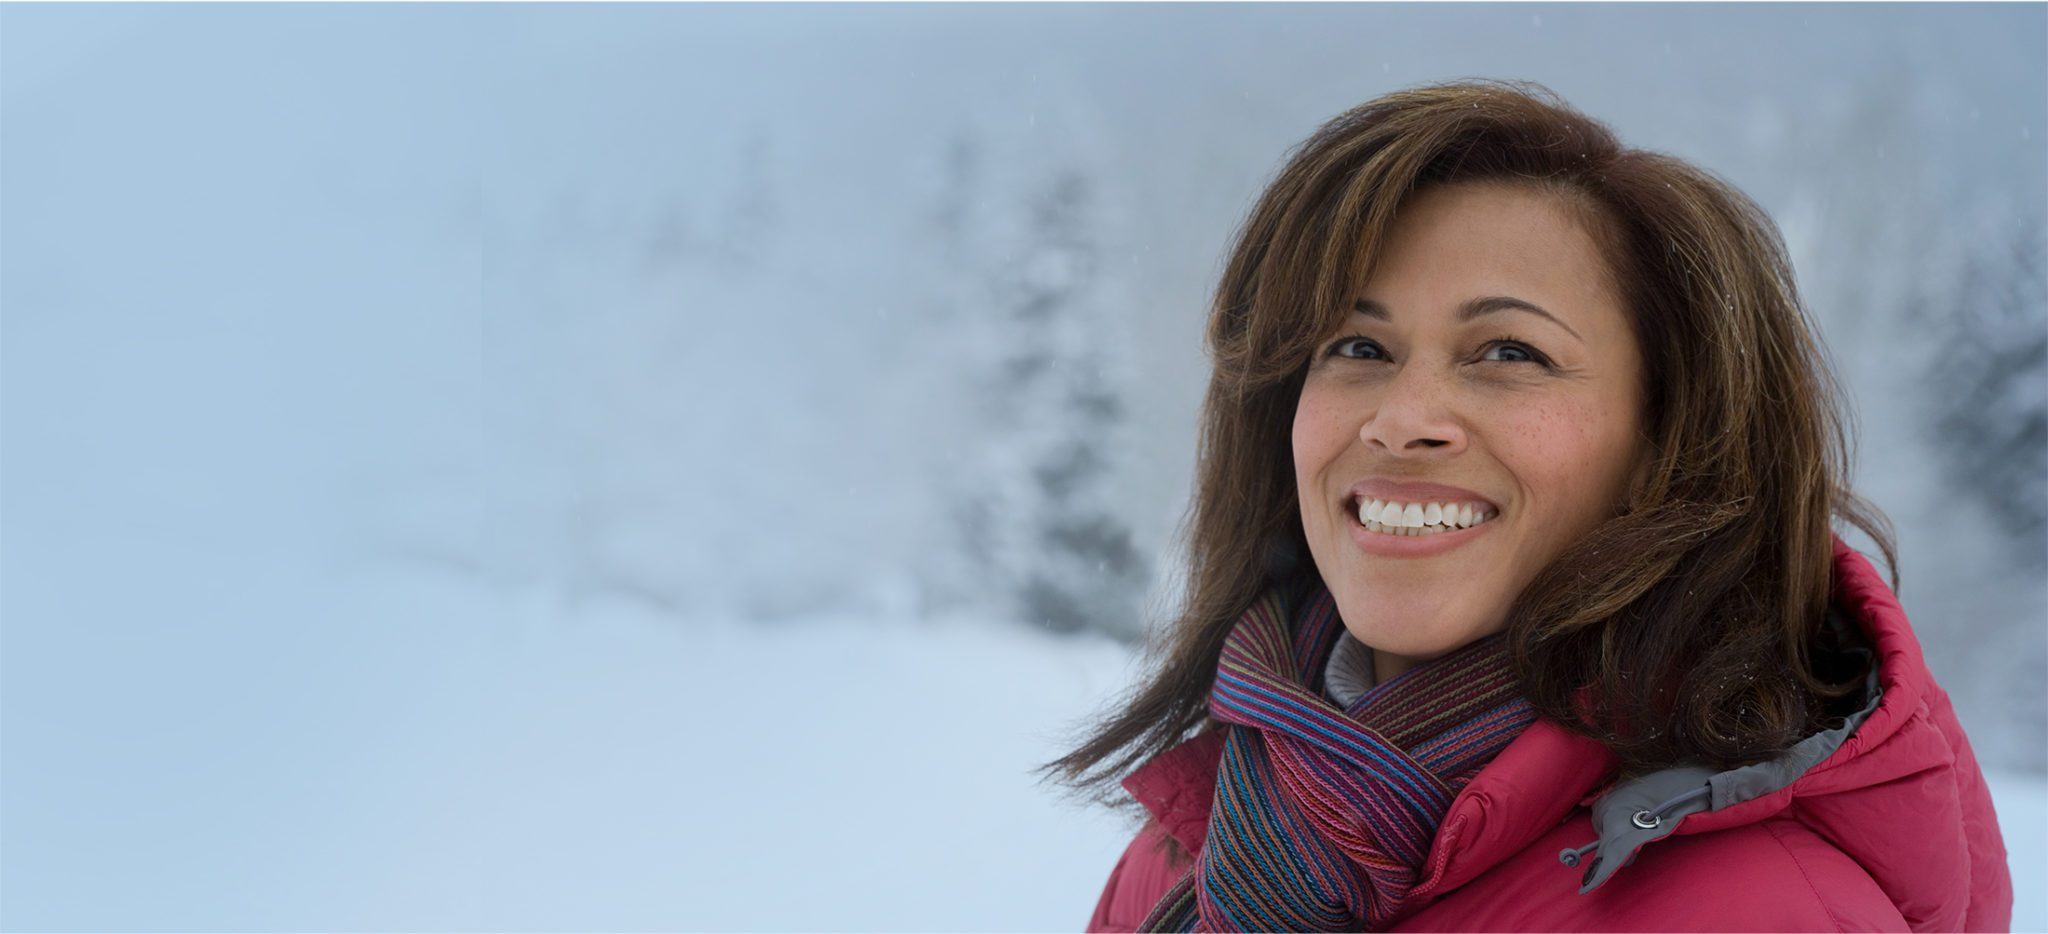 Smiling woman with a scarf in a snowstorm